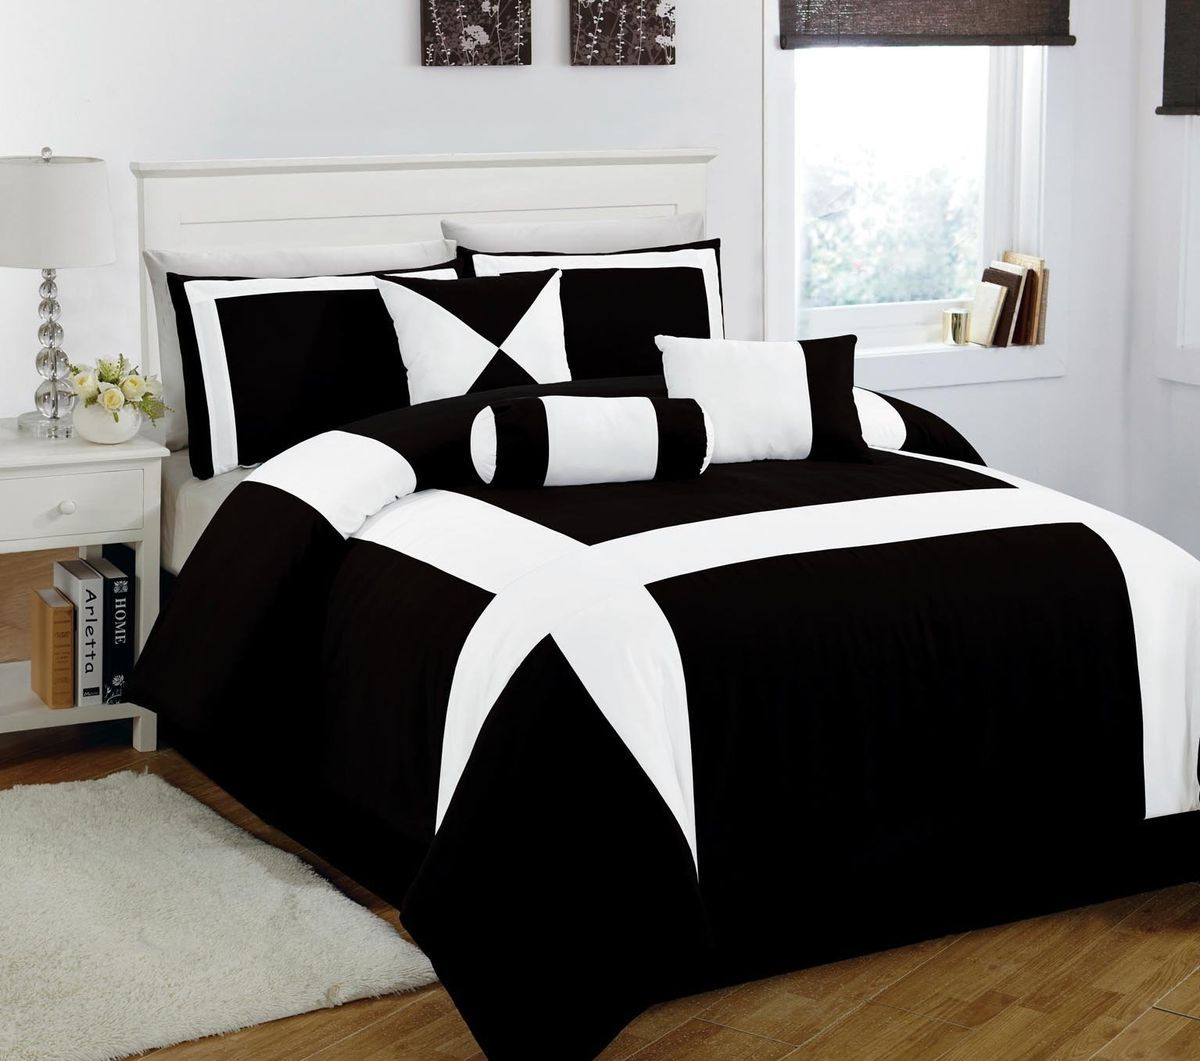 11 Piece King Jefferson Black and White Bed in a Bag w/600TC